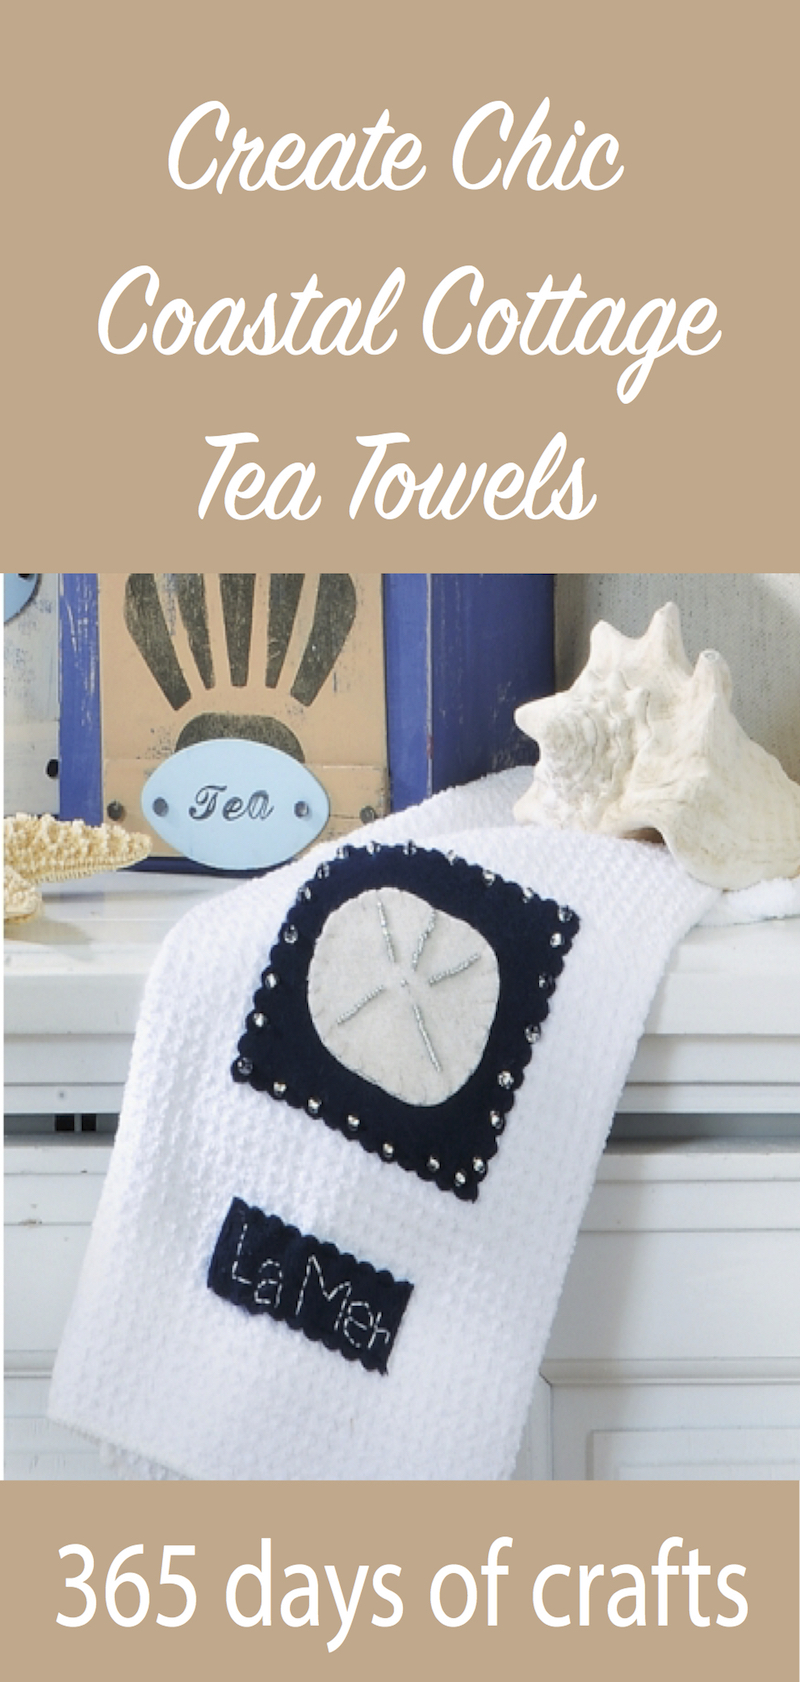 graphic relating to Printable Towels named Generate stylish seaside cottage tea towels with free of charge printable habit